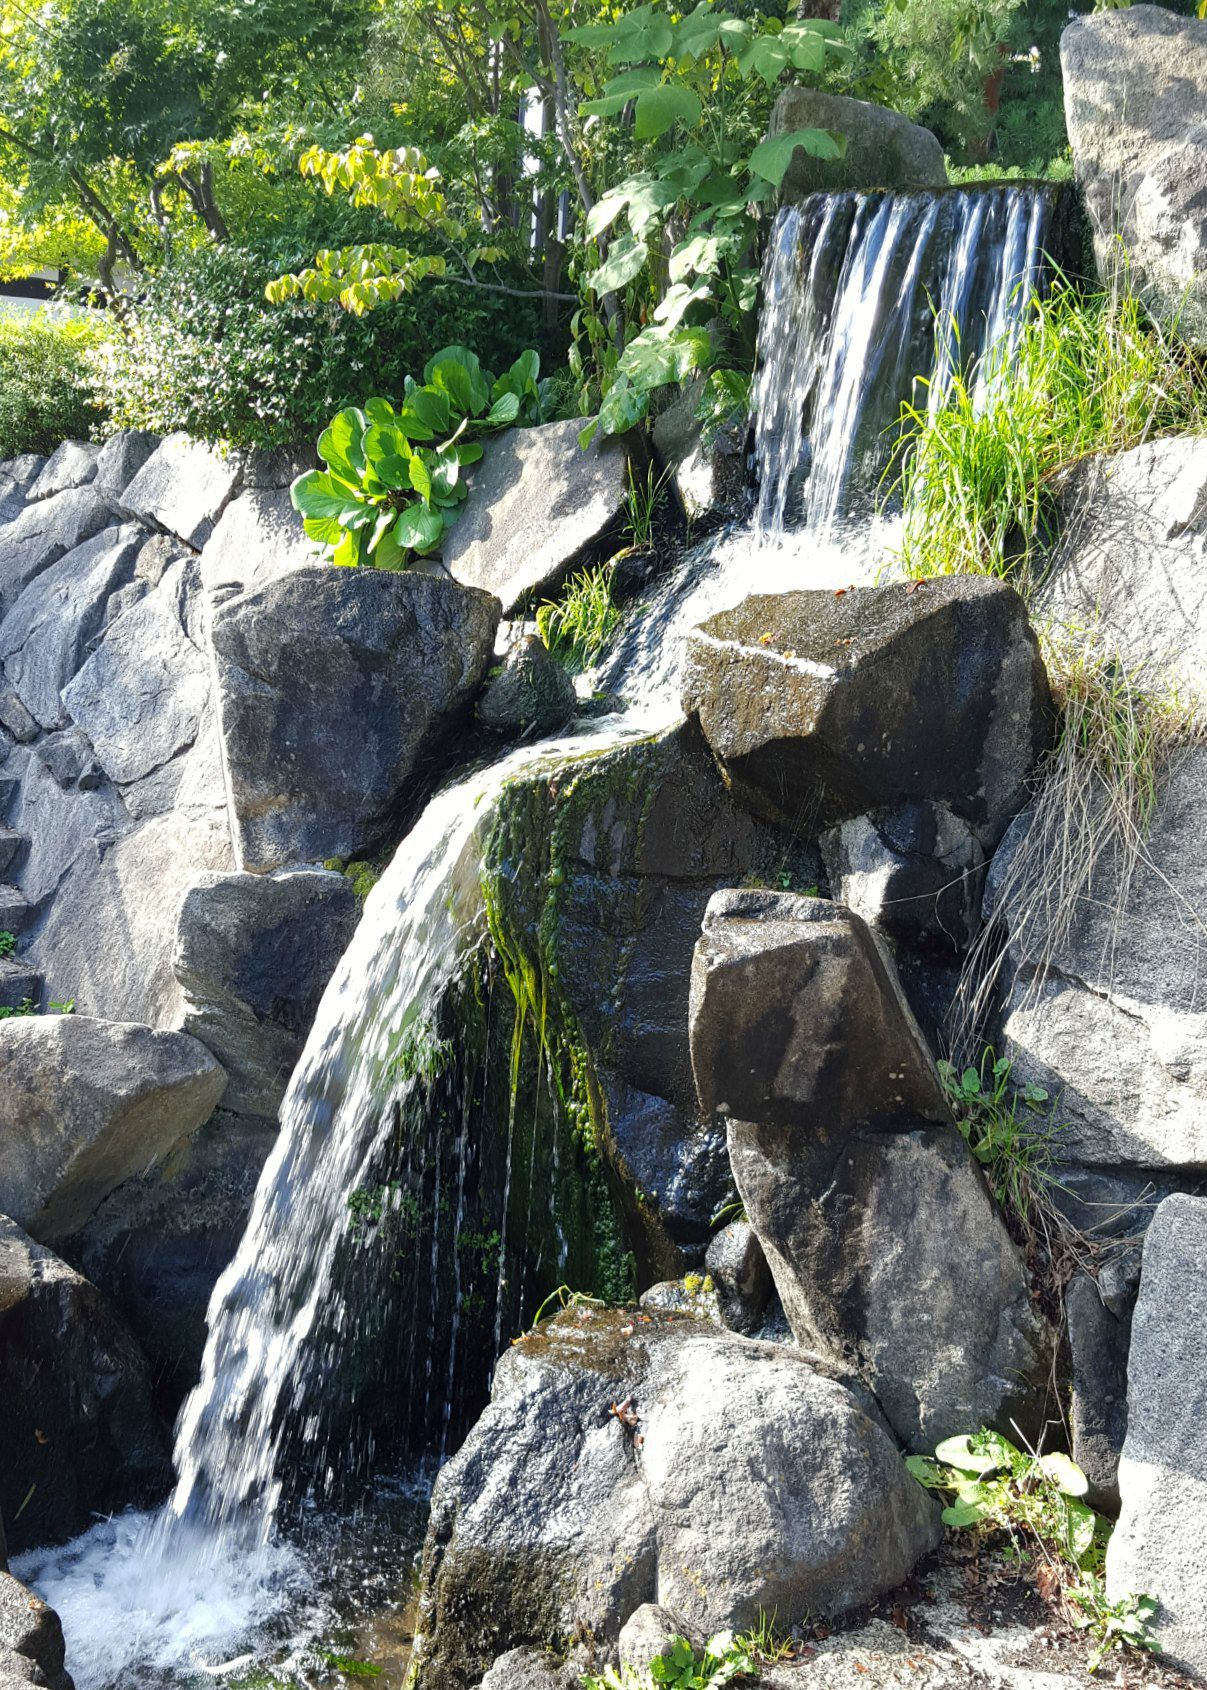 Waterfall near Nawate St in Matsumoto Japan